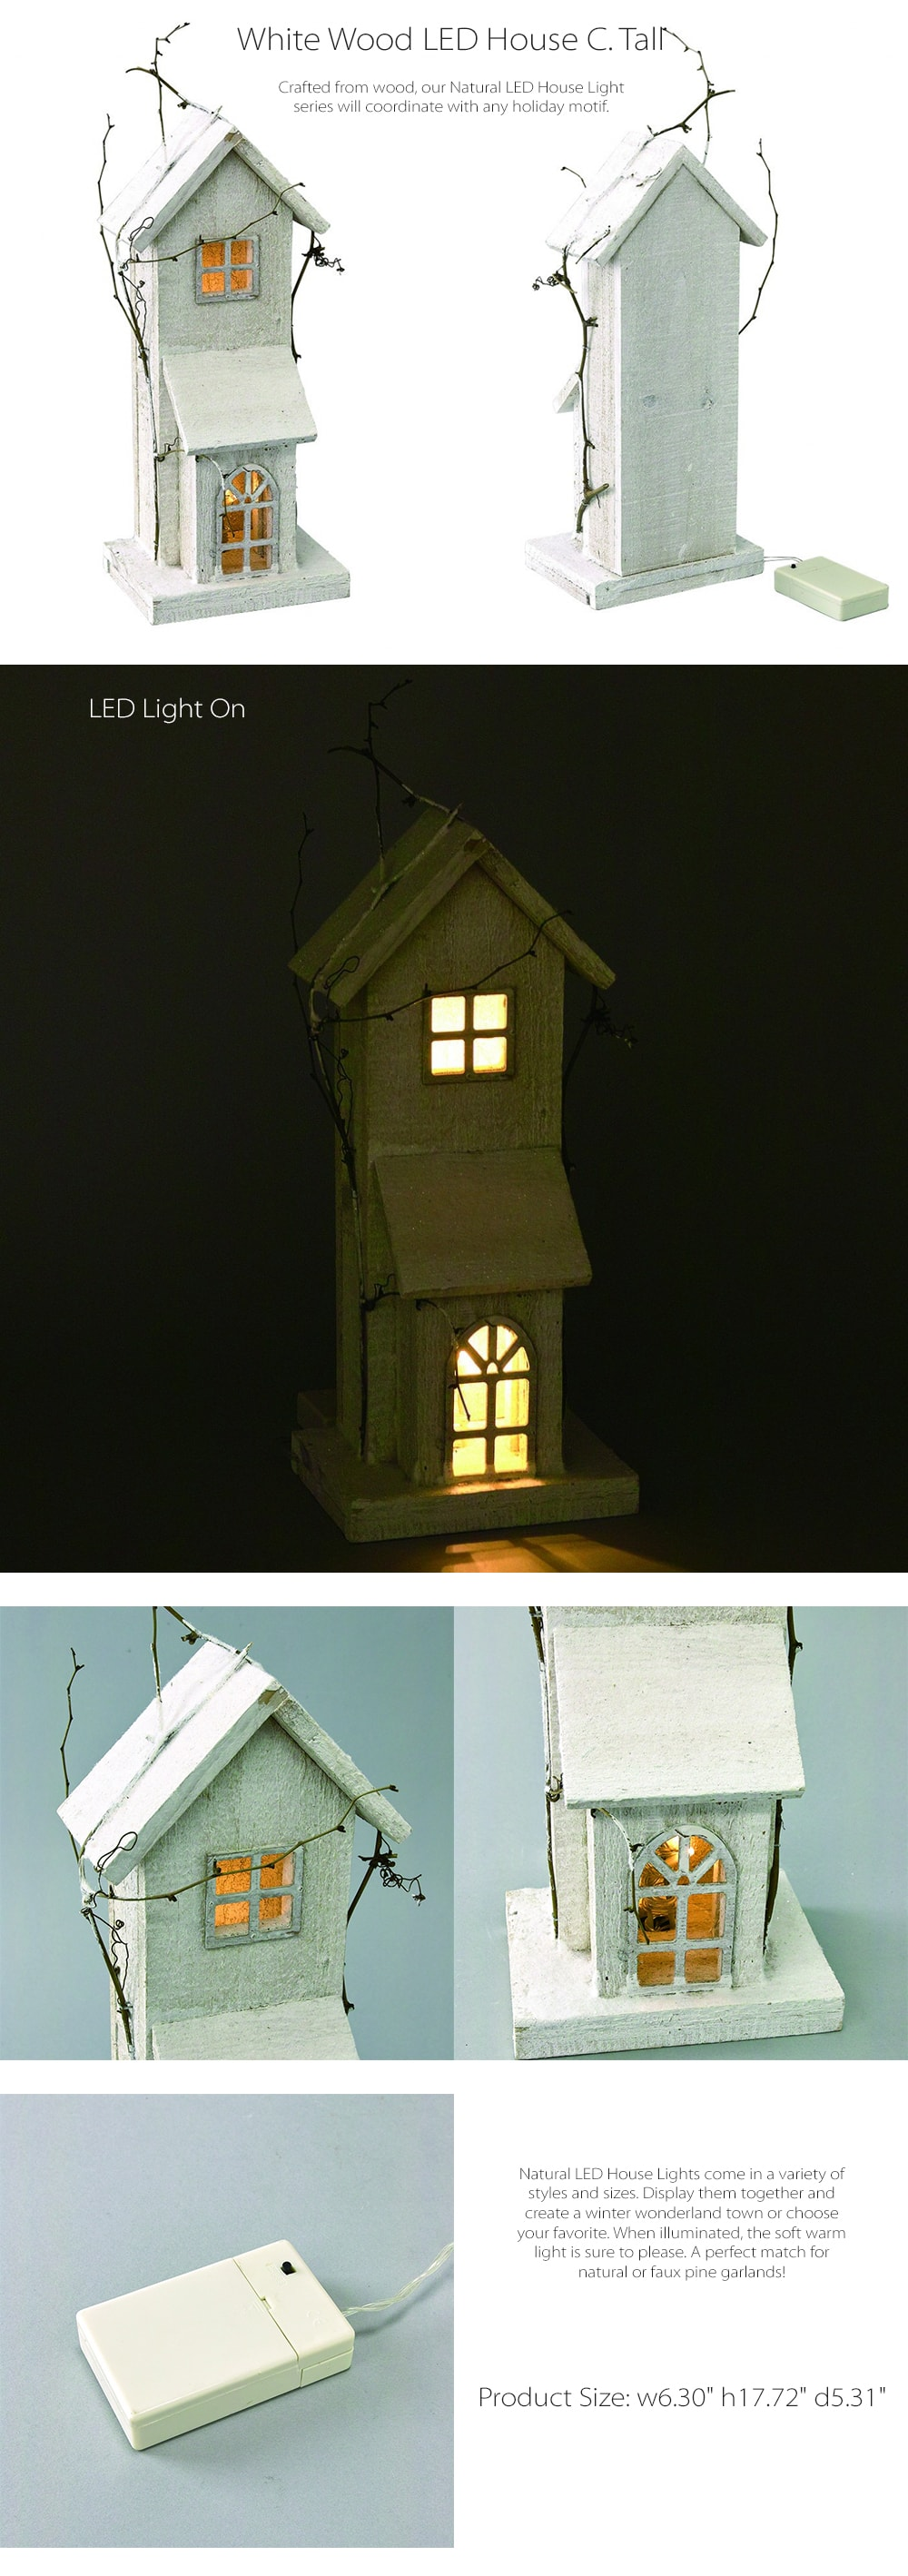 White Wood LED House C. Tall Crafted From Natural Wood